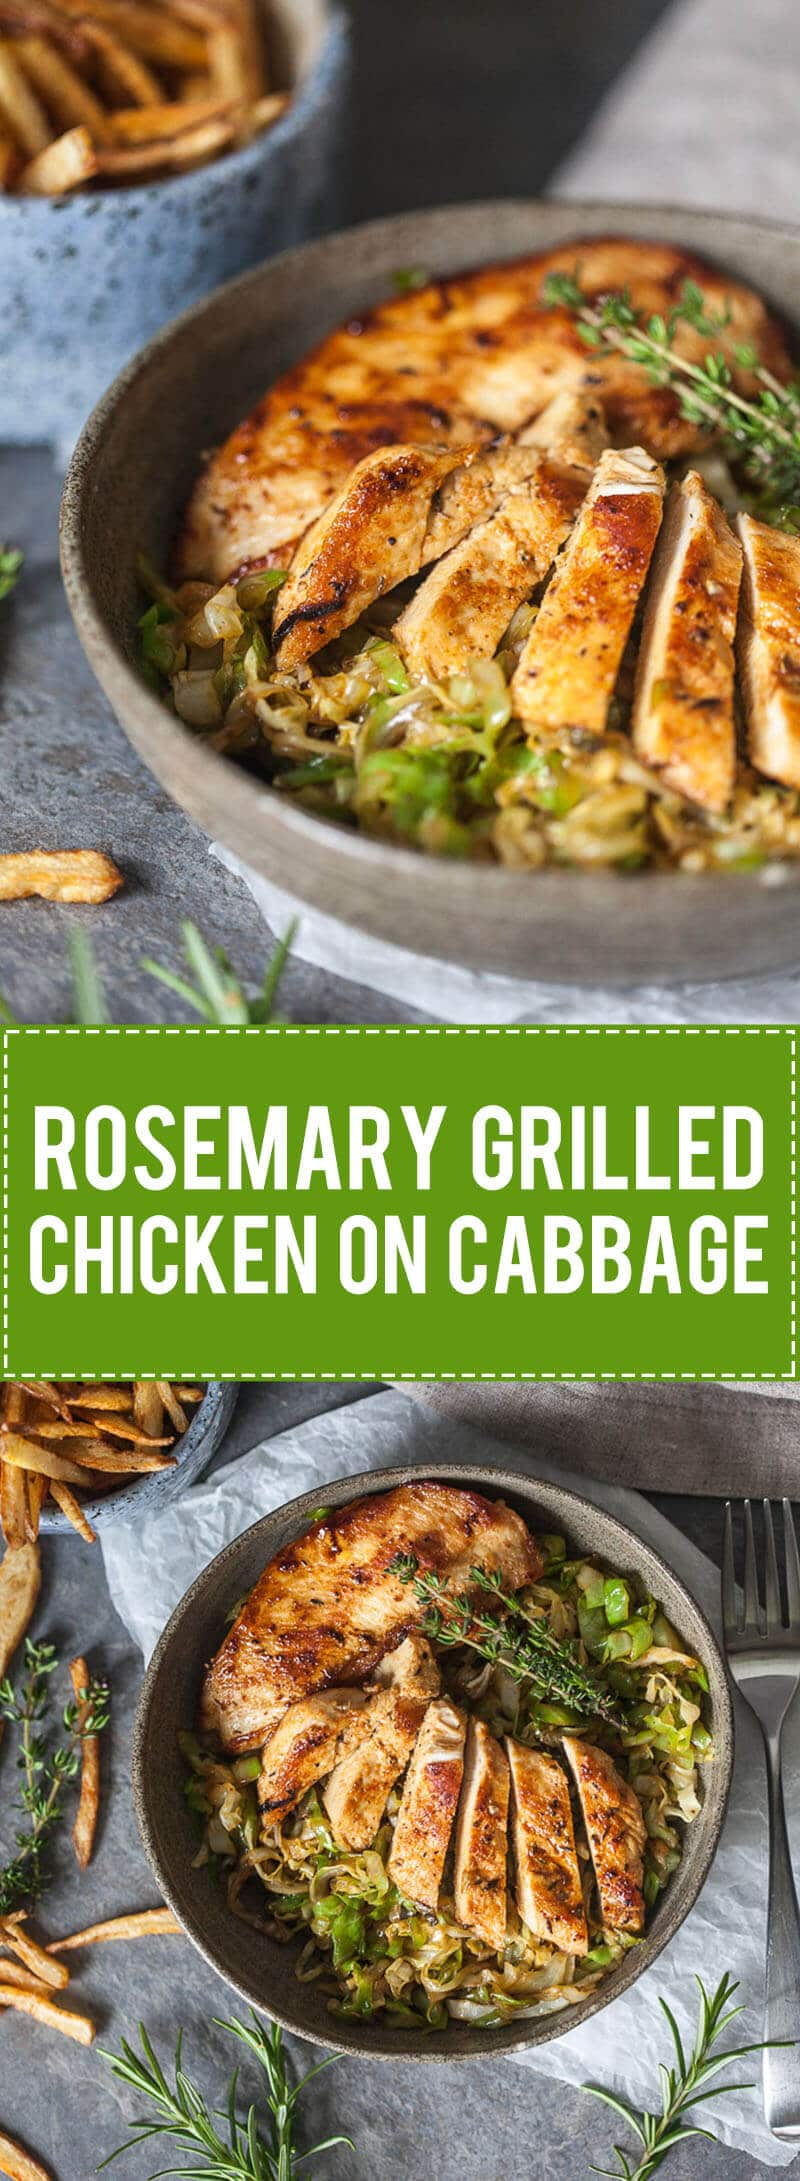 An easy summer dinner, this Rosemary Grilled Chicken on Cabbage is delicious, gluten-free and dairy-free. | www.vibrantplate.com